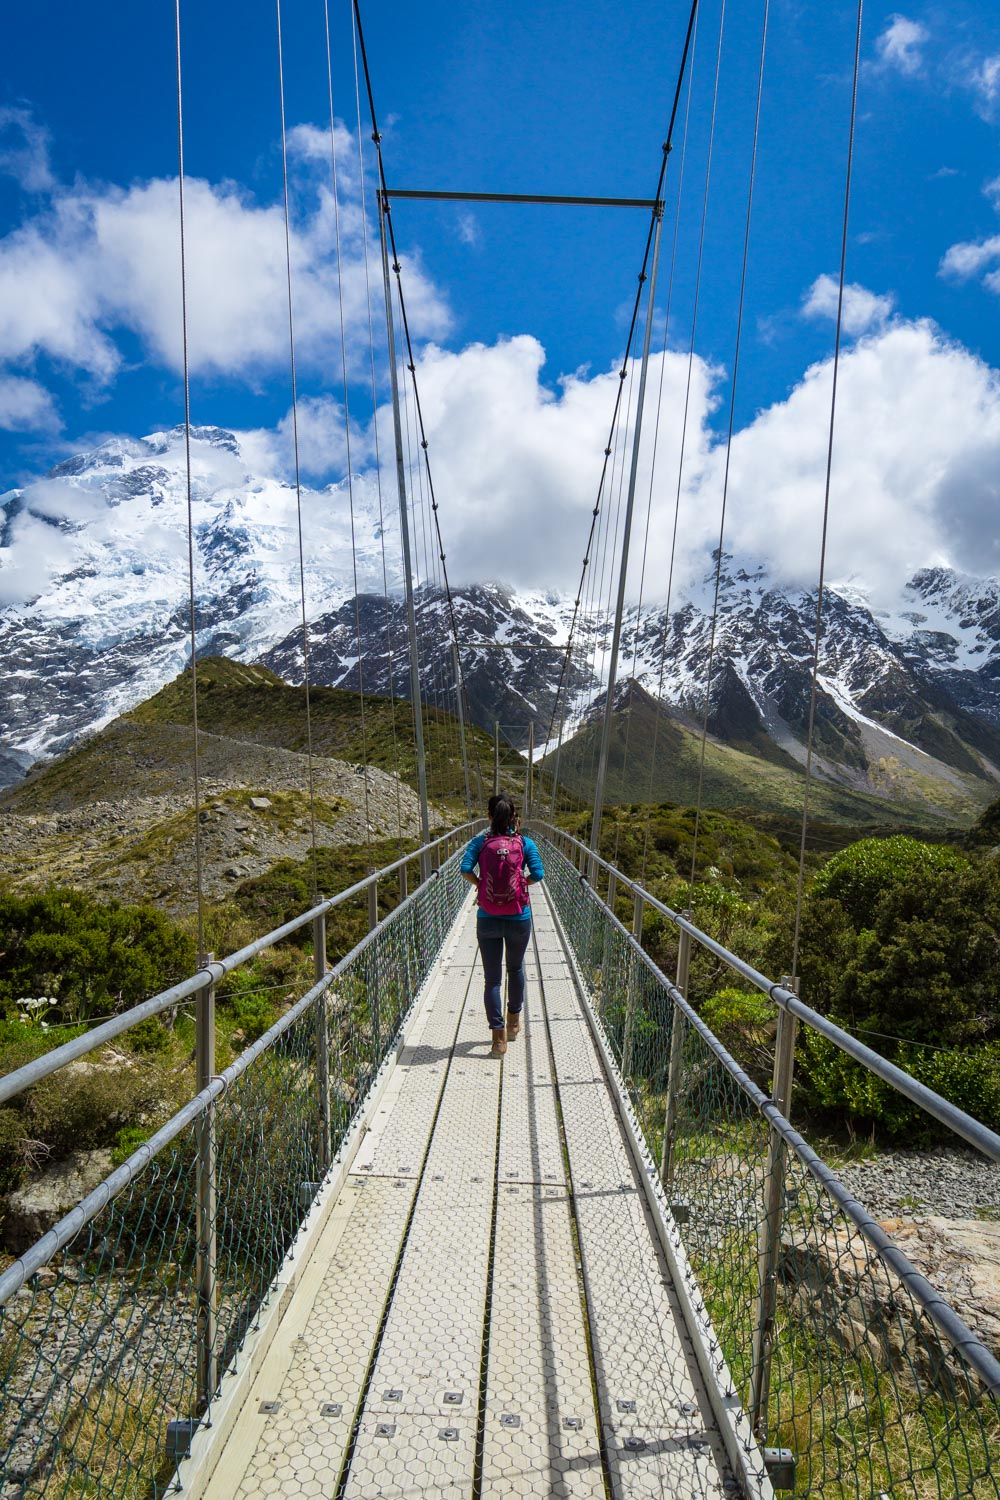 The epic view of the Sealy Range from the second swinging bridge